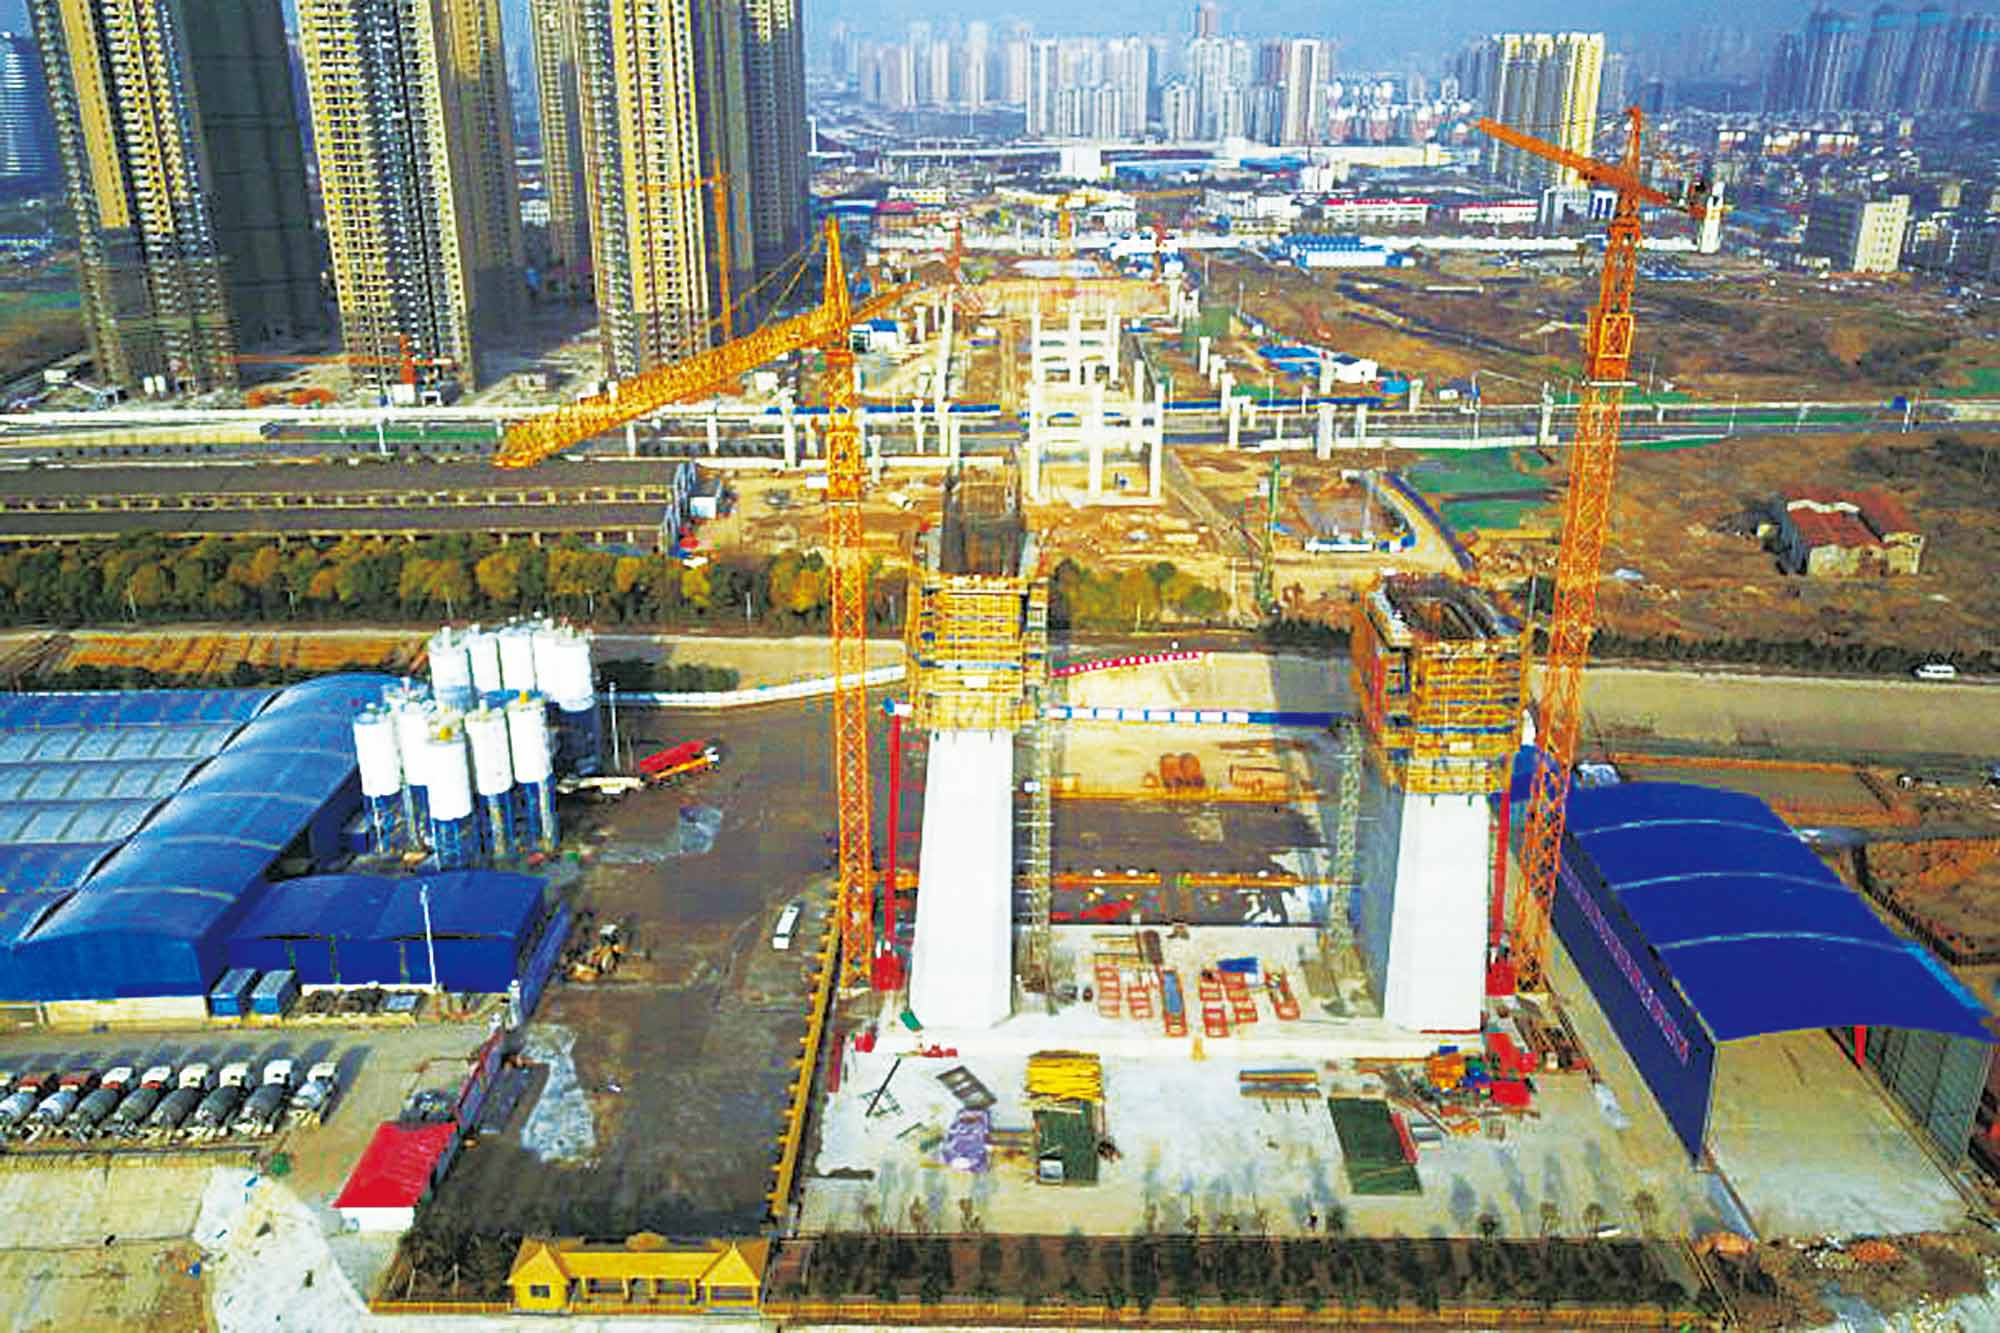 Potain cranes construct world's second longest span suspension bridge in China